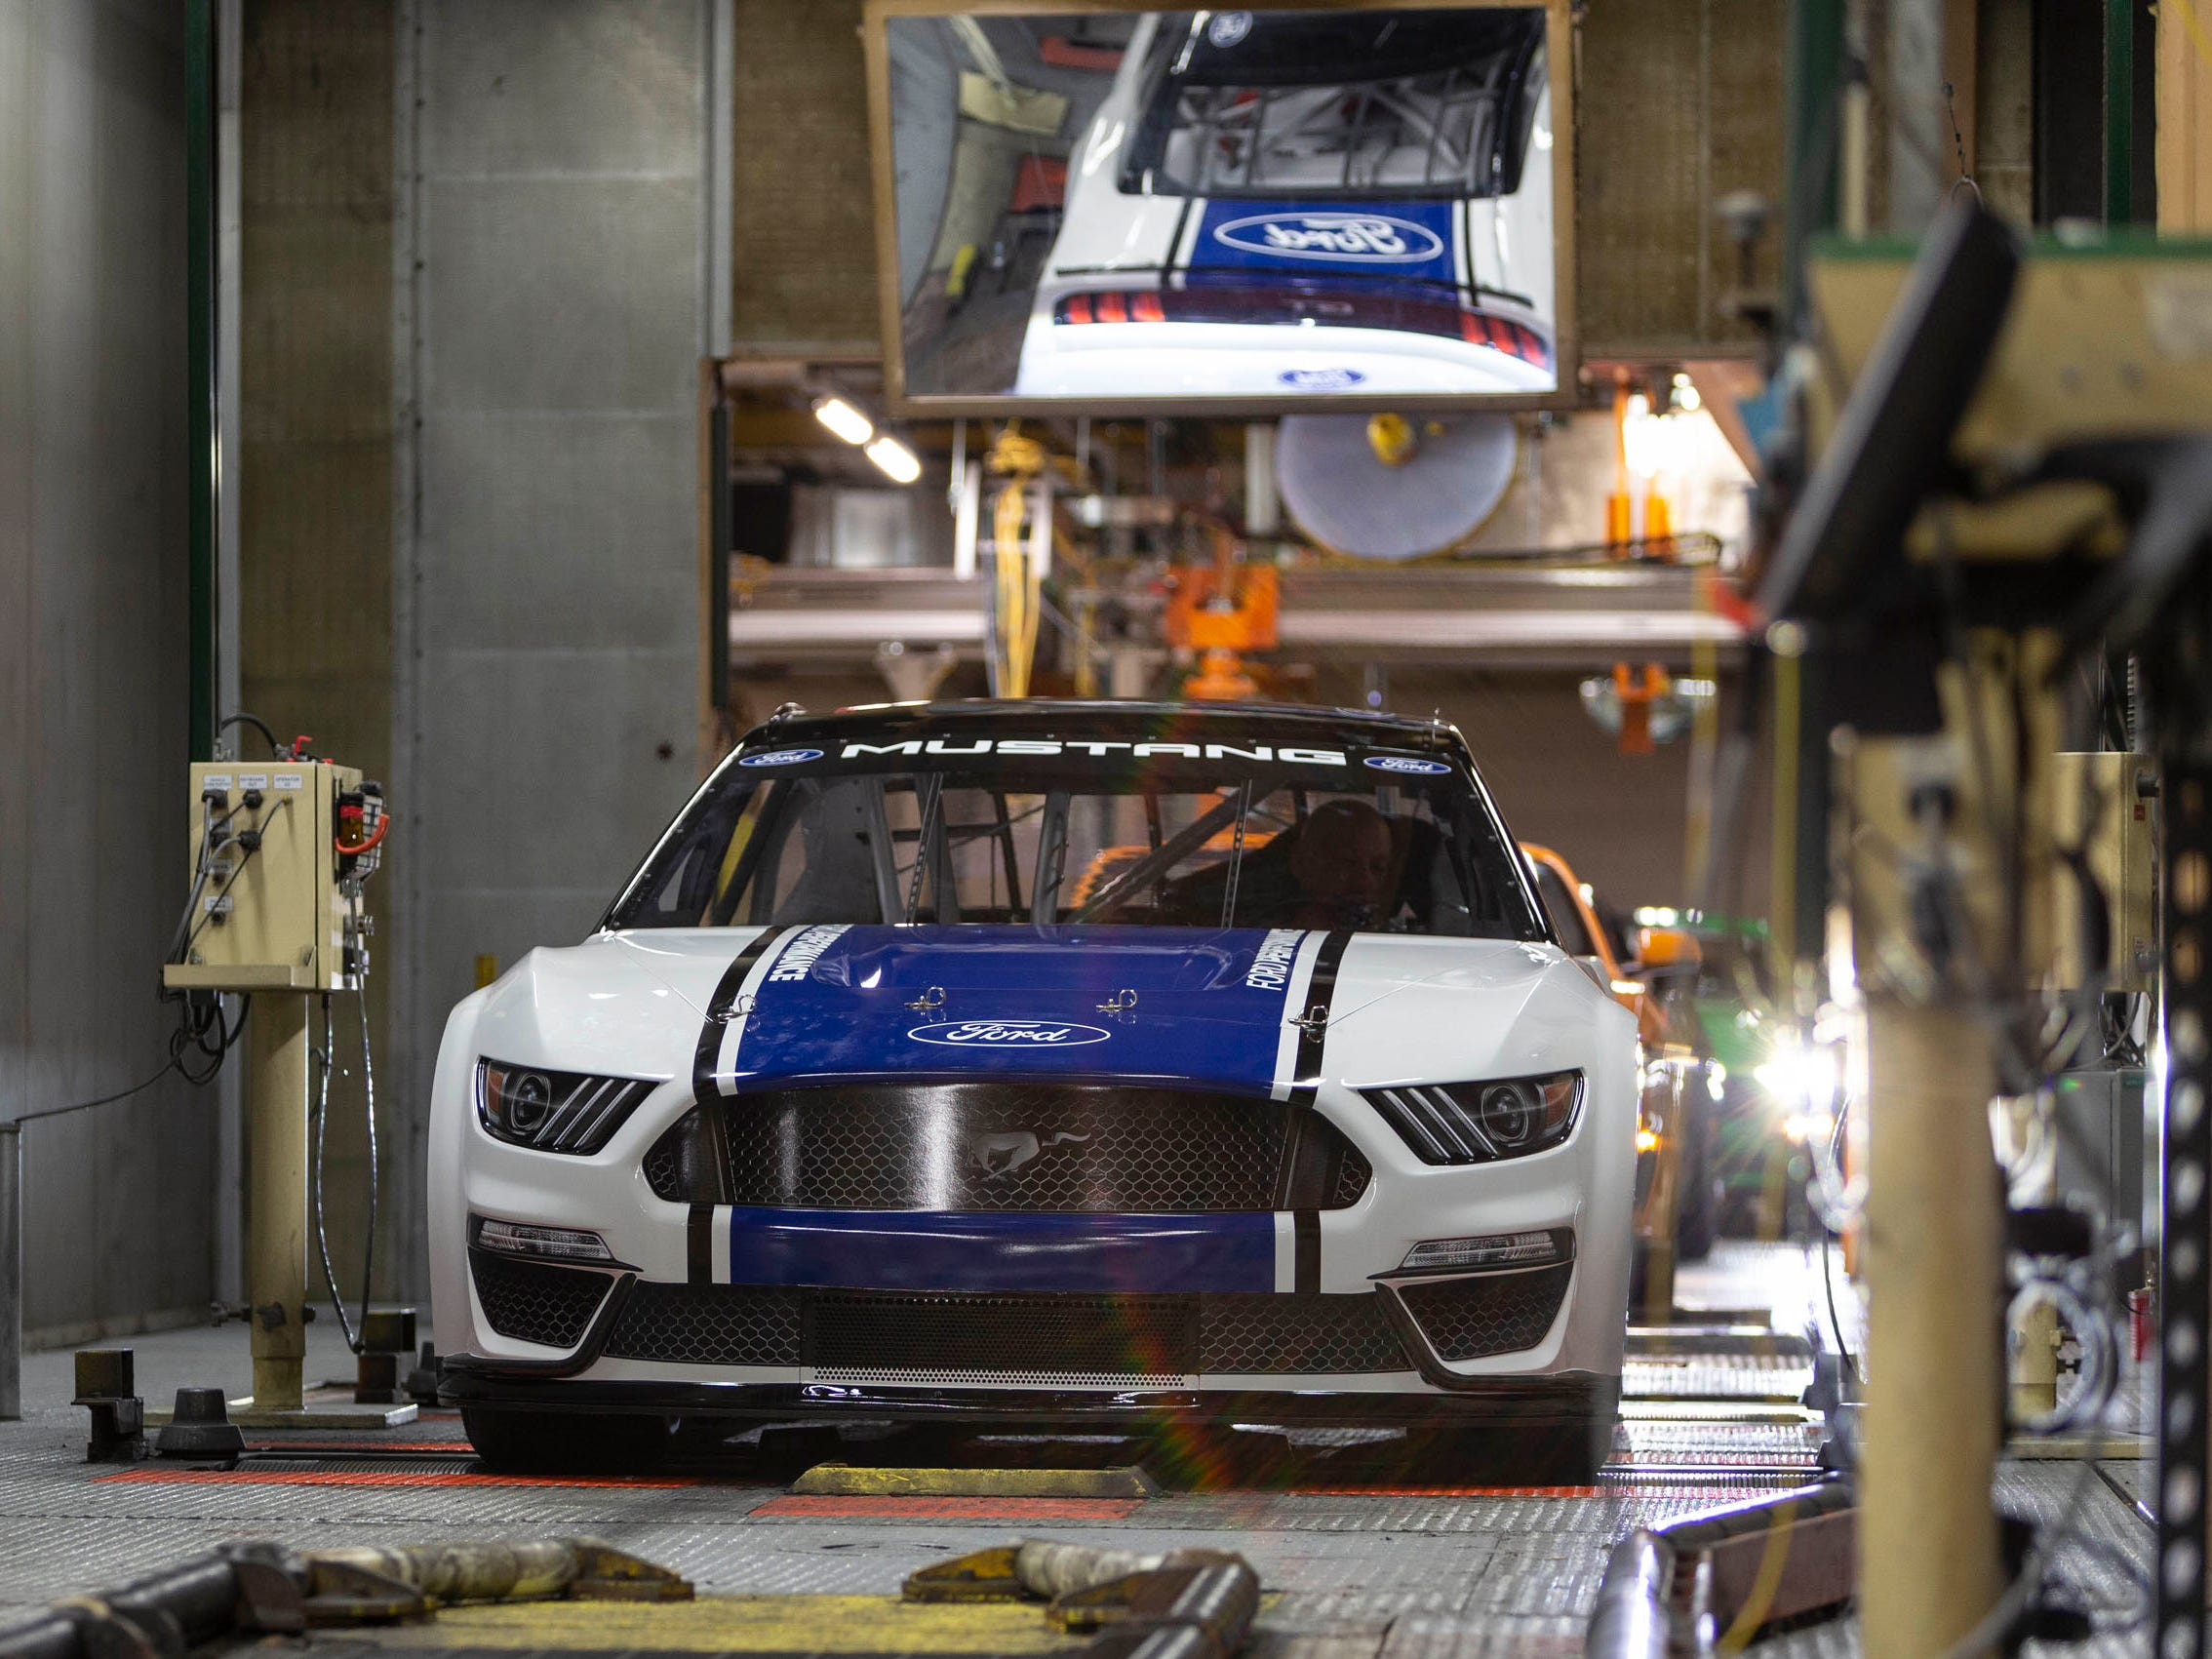 Ford Performance and Ford Design teams worked together on new model to create competitive race car that remains true to its heritage.